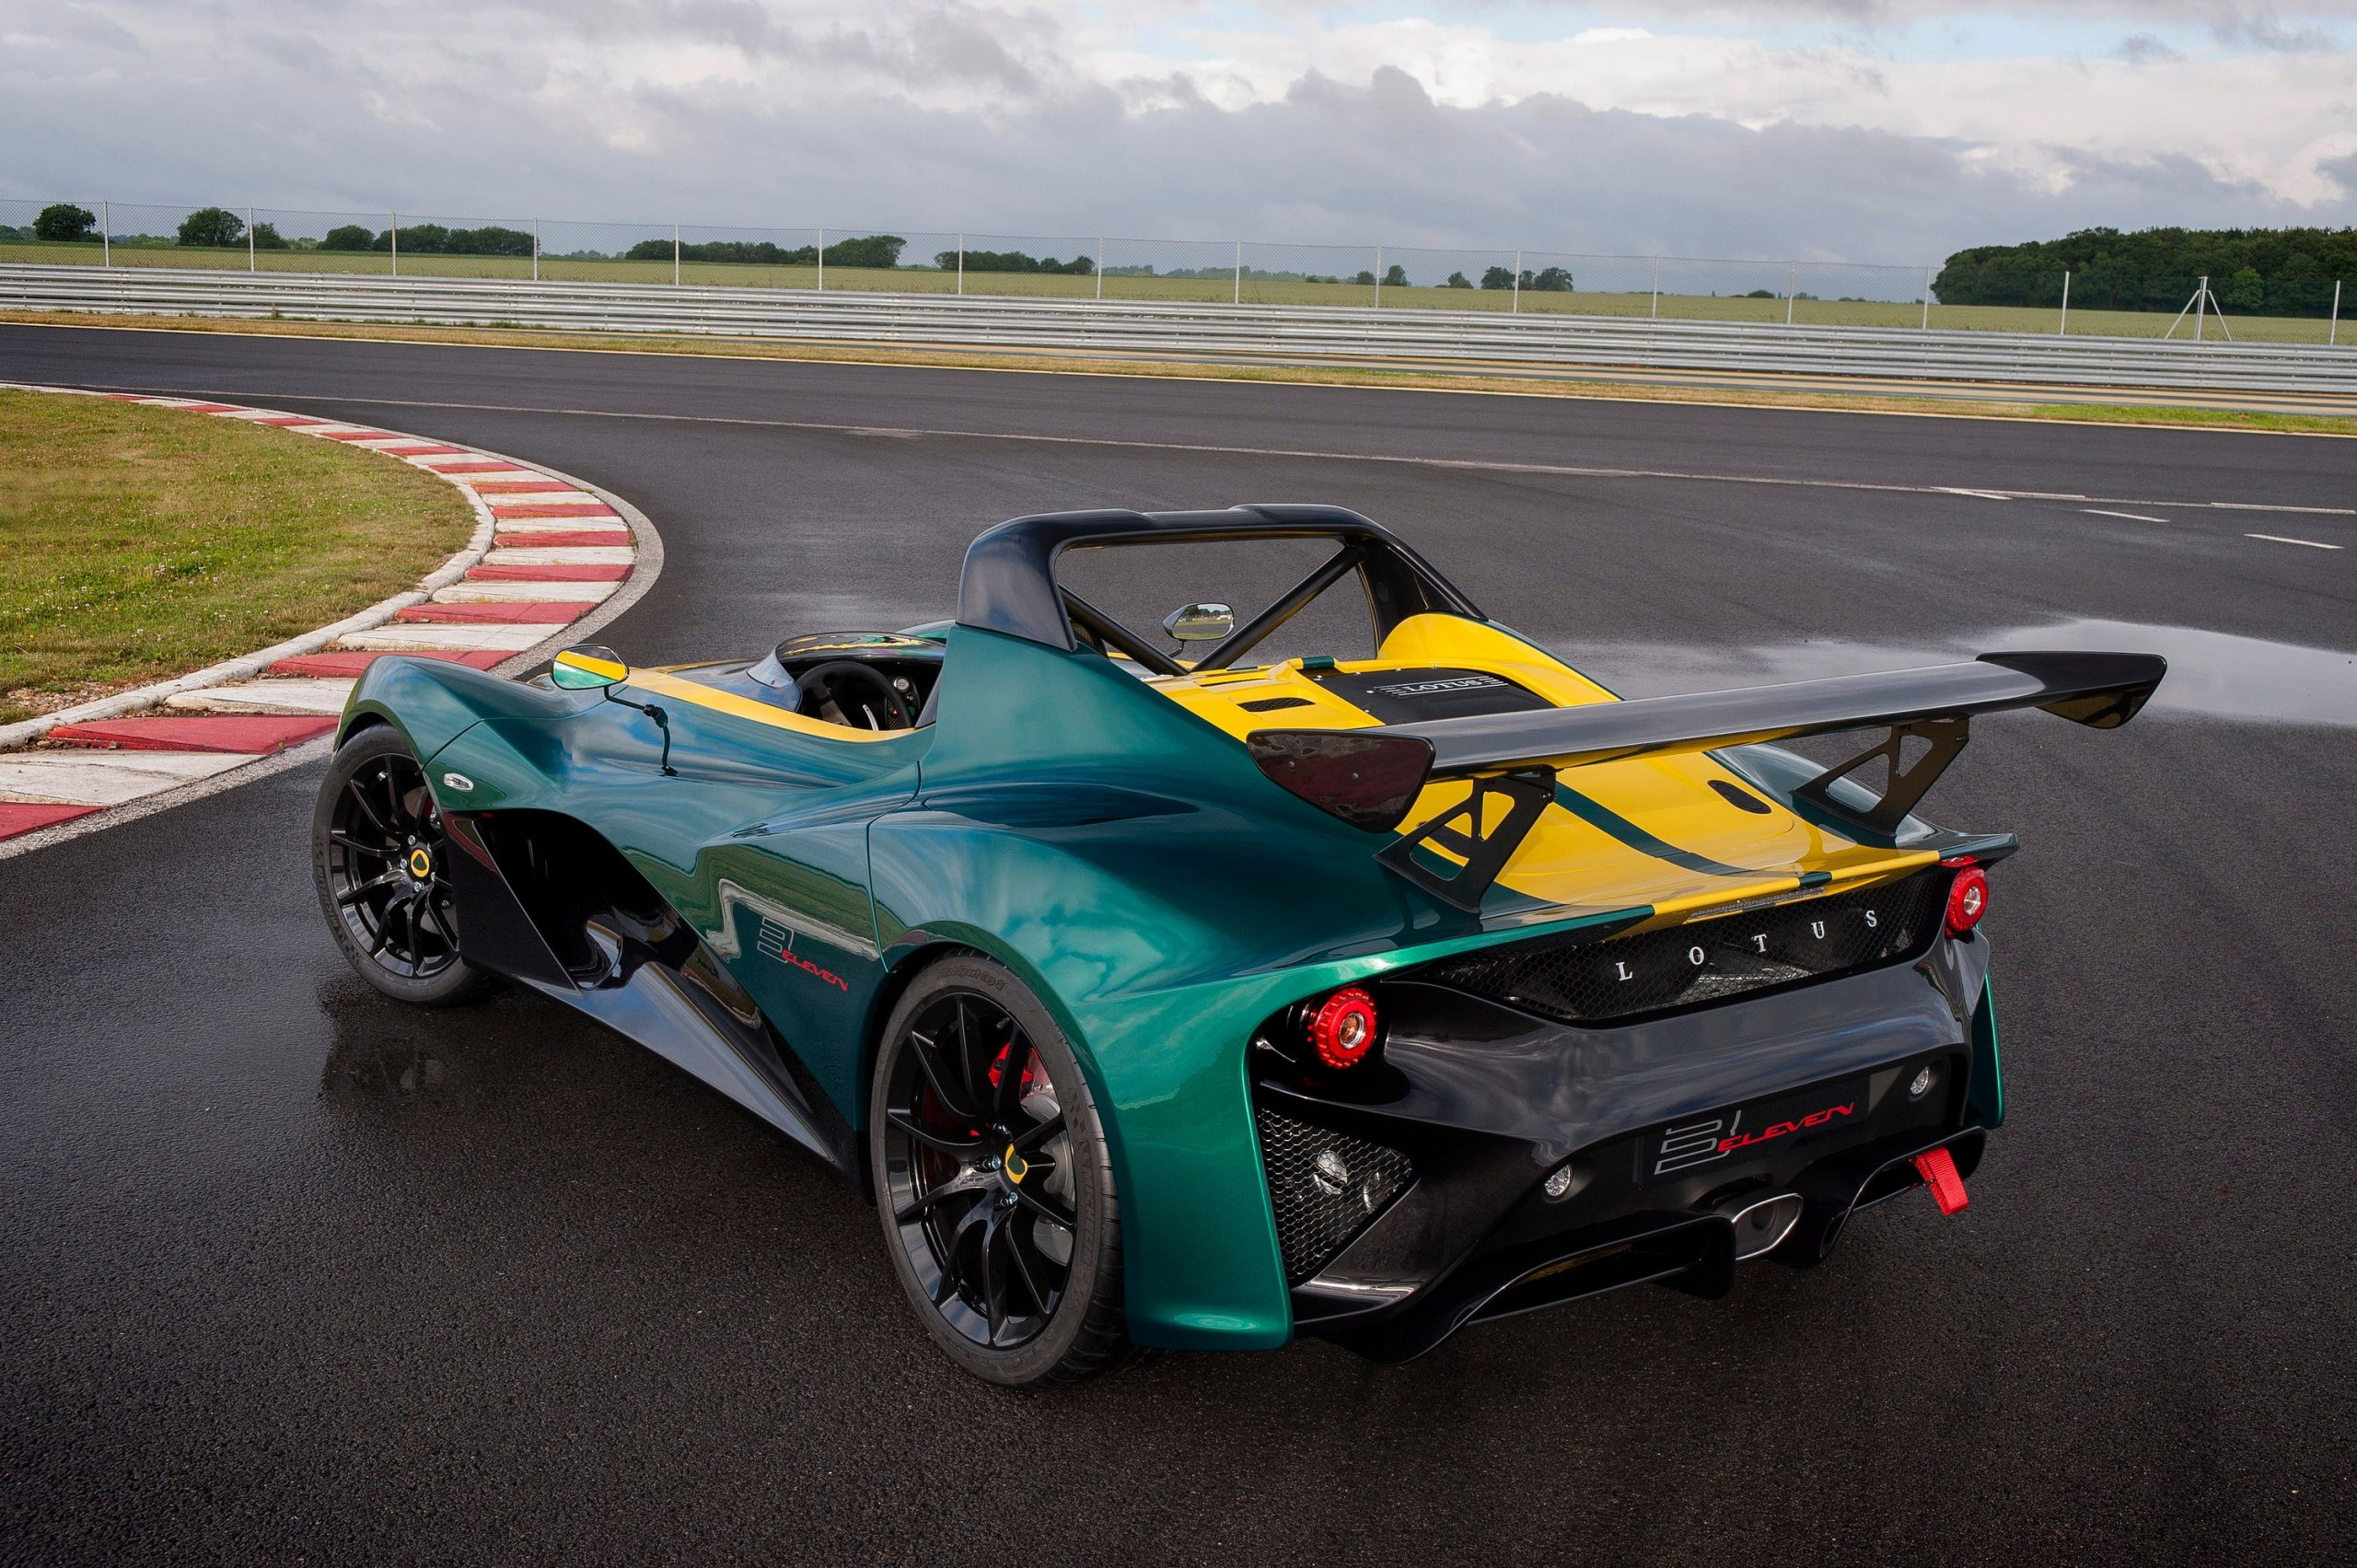 The doorless, roofless, windowless Lotus 3 Eleven